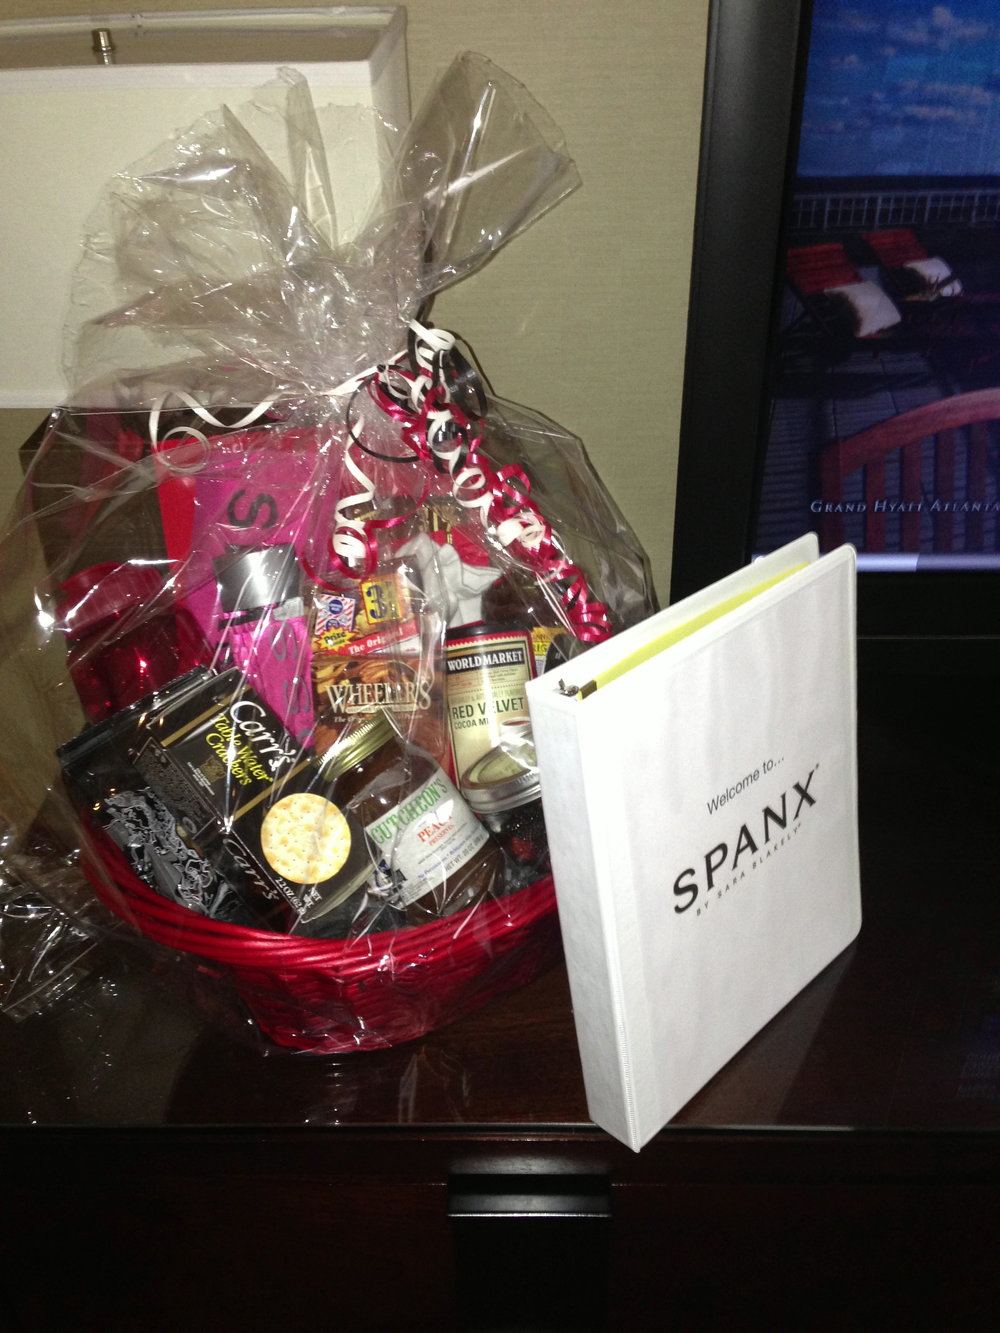 My welcome from SPANX in Atlanta